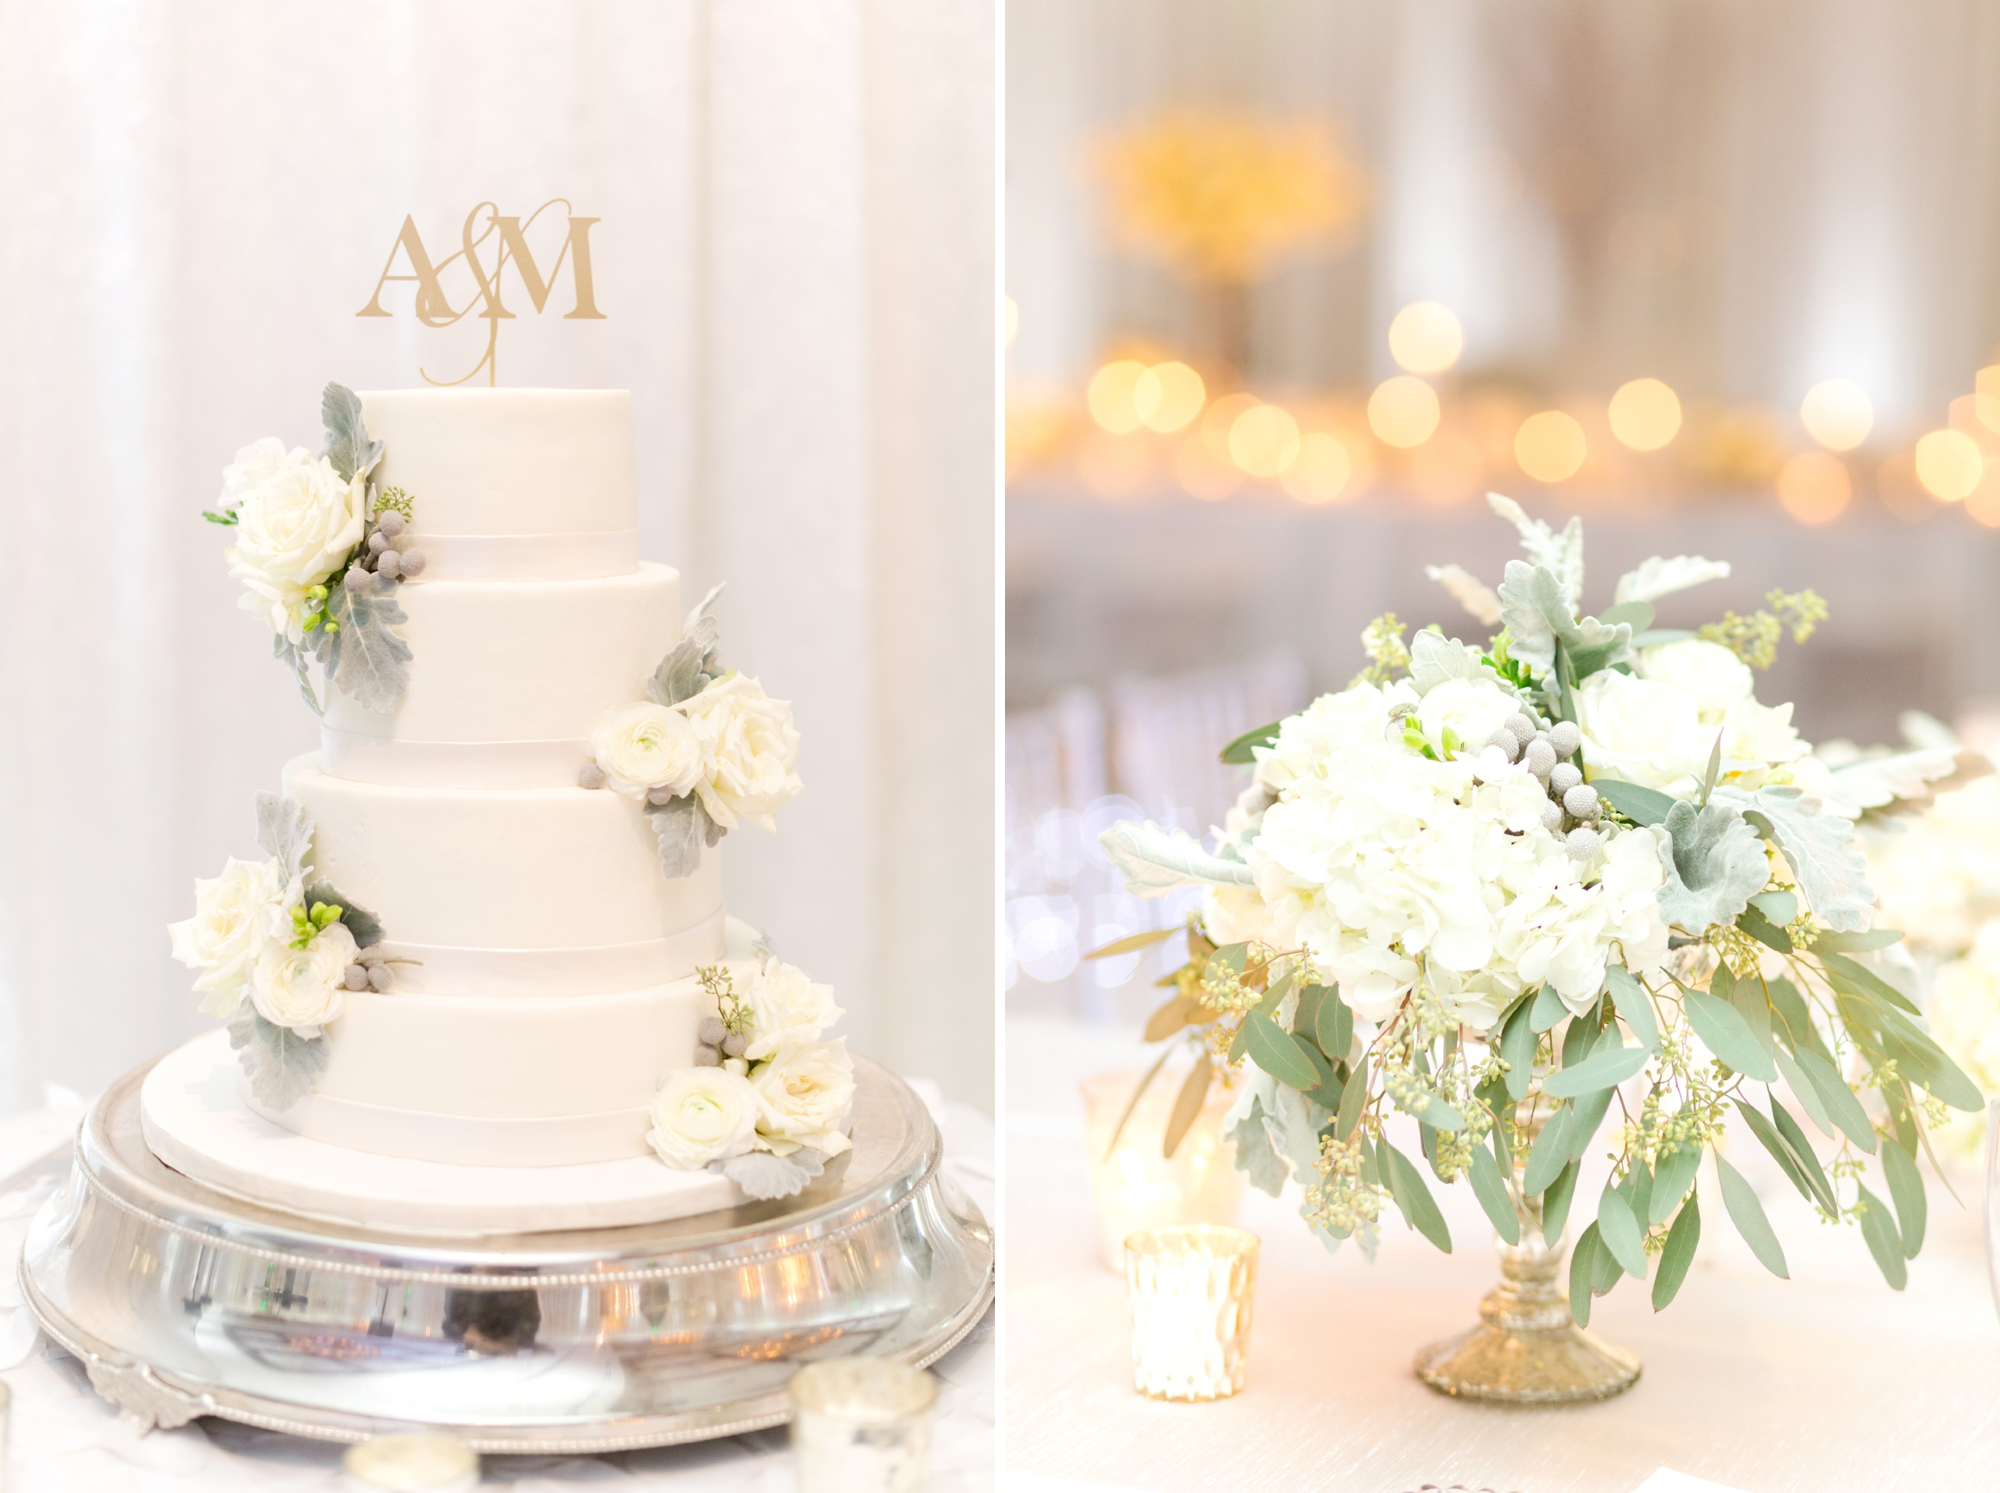 winter wedding cake with custom monogrammed cake topper